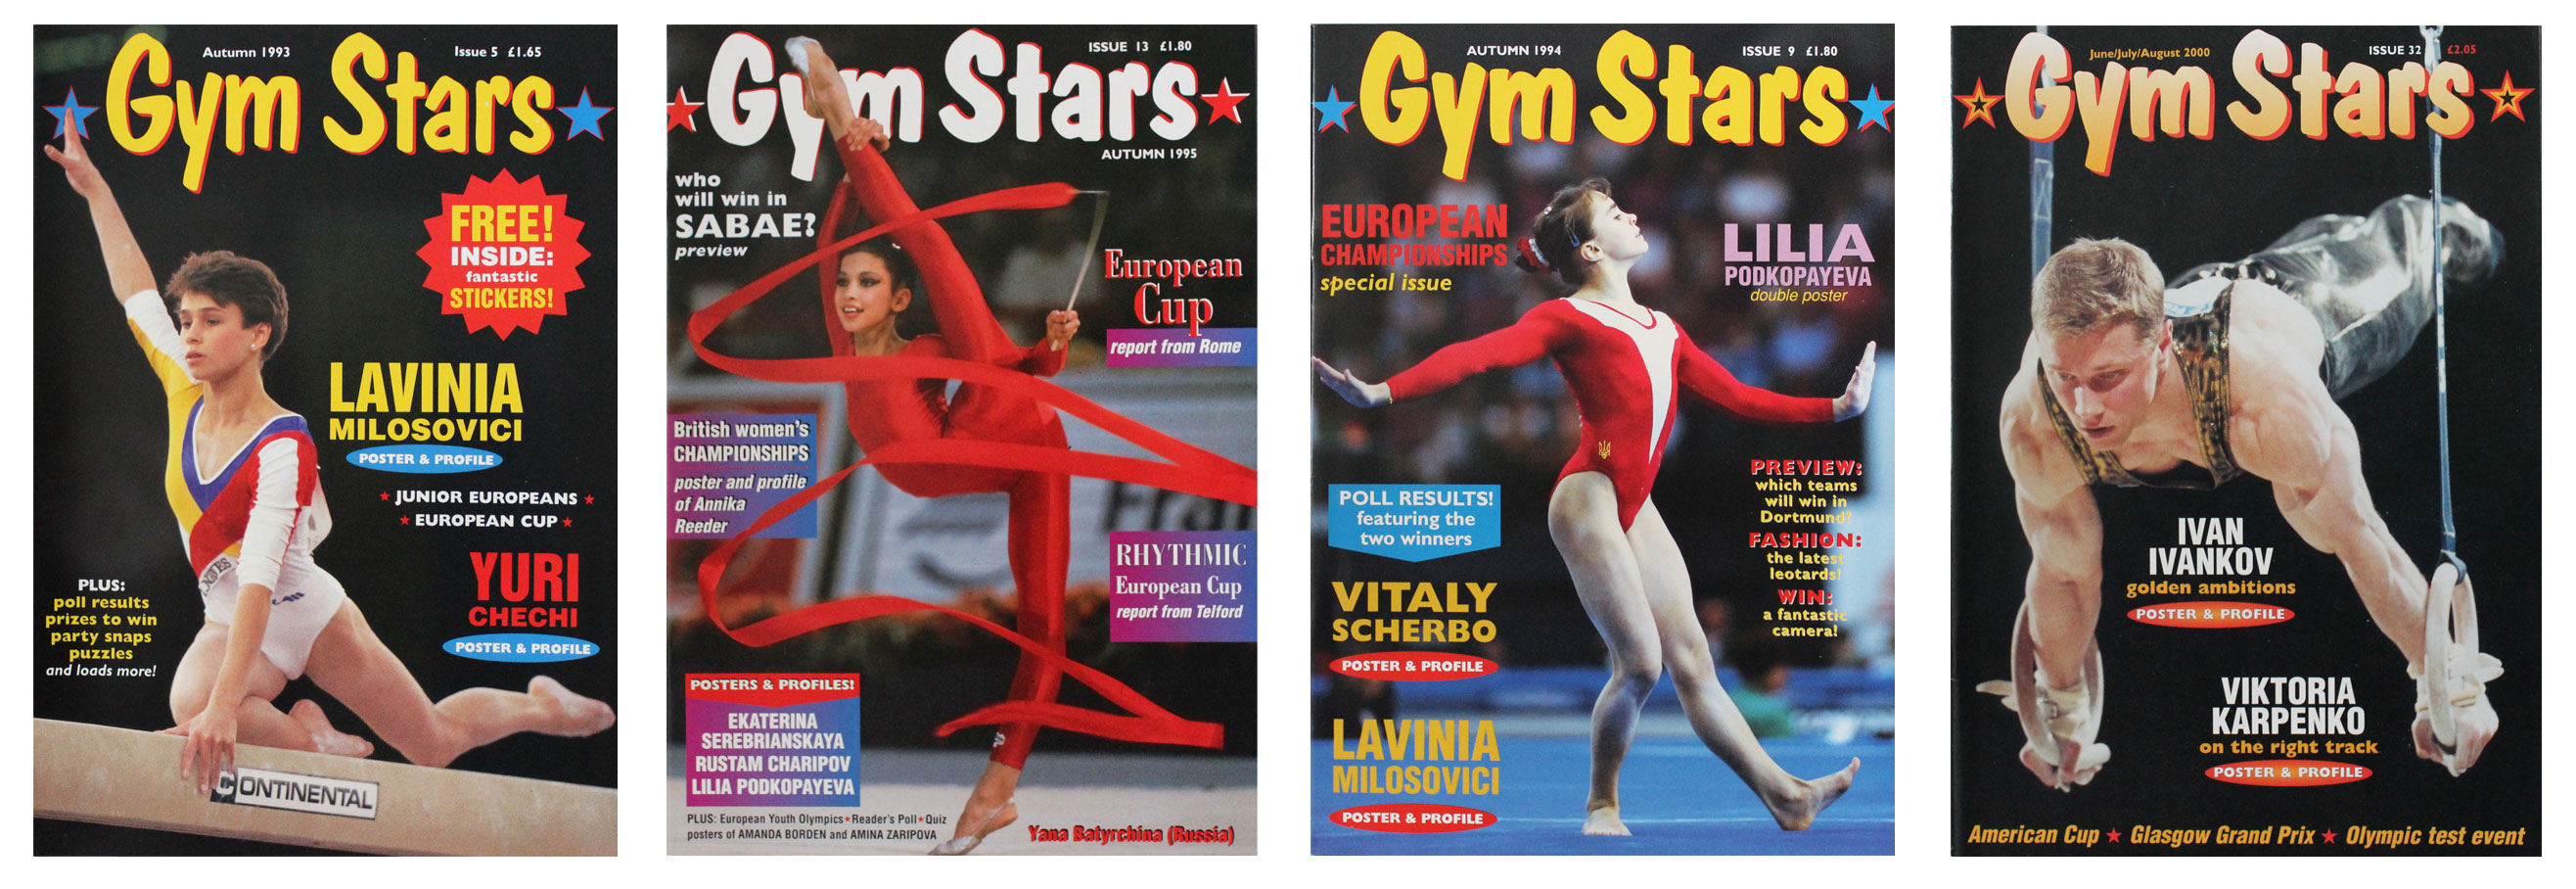 Four front covers of Gym Stars magazine